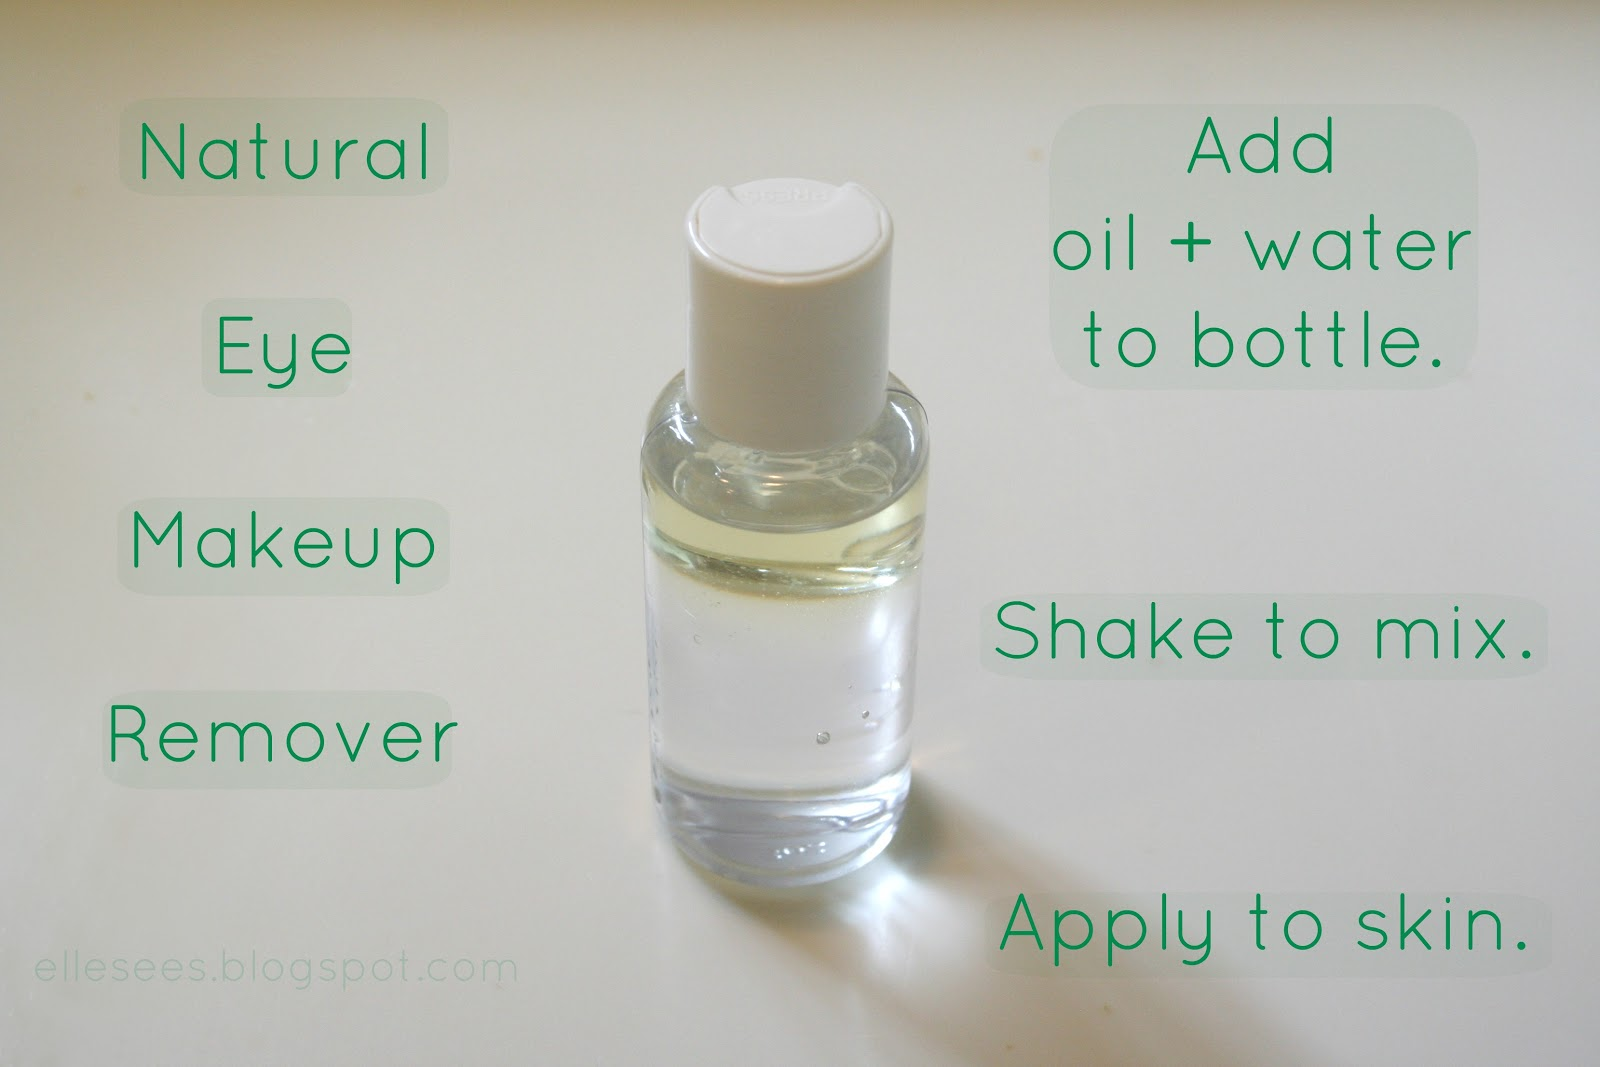 eye remover how cheaper.jpg makeup natural eye olive olive  remover makeup oil oil natural easy to